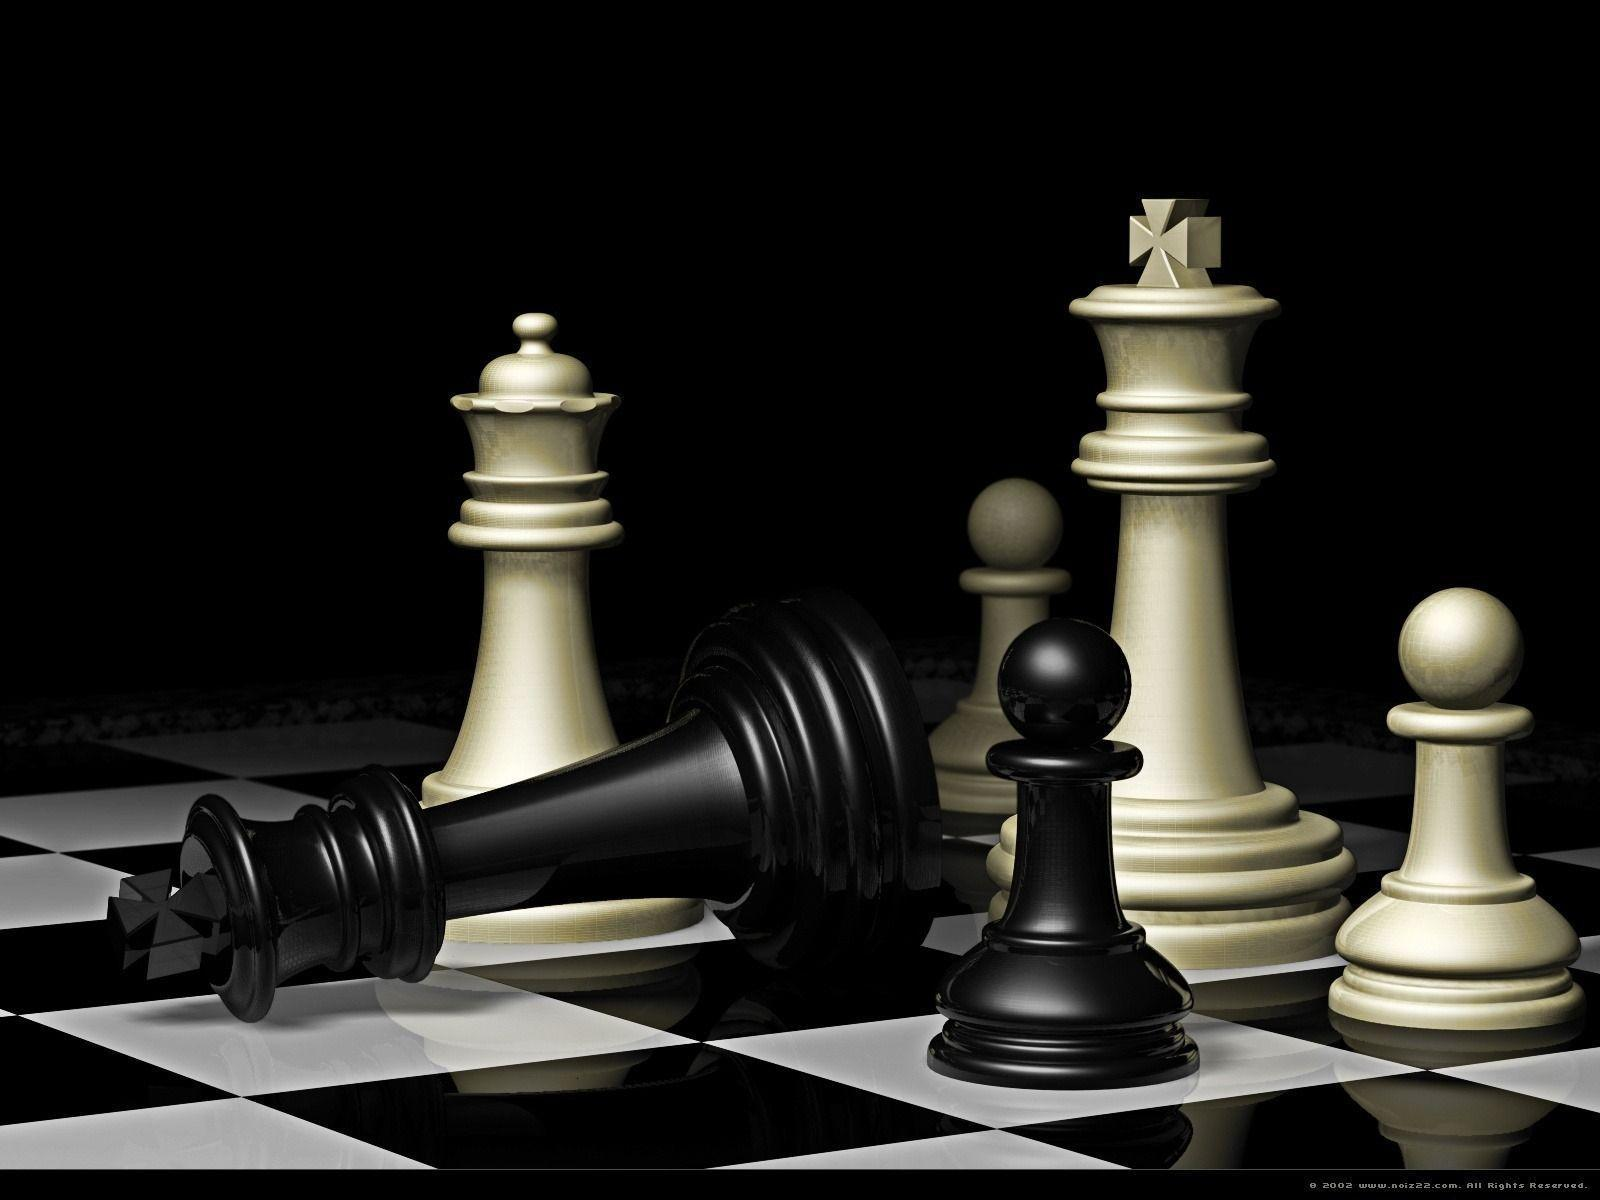 Chess Wallpapers Desktop Image & Pictures